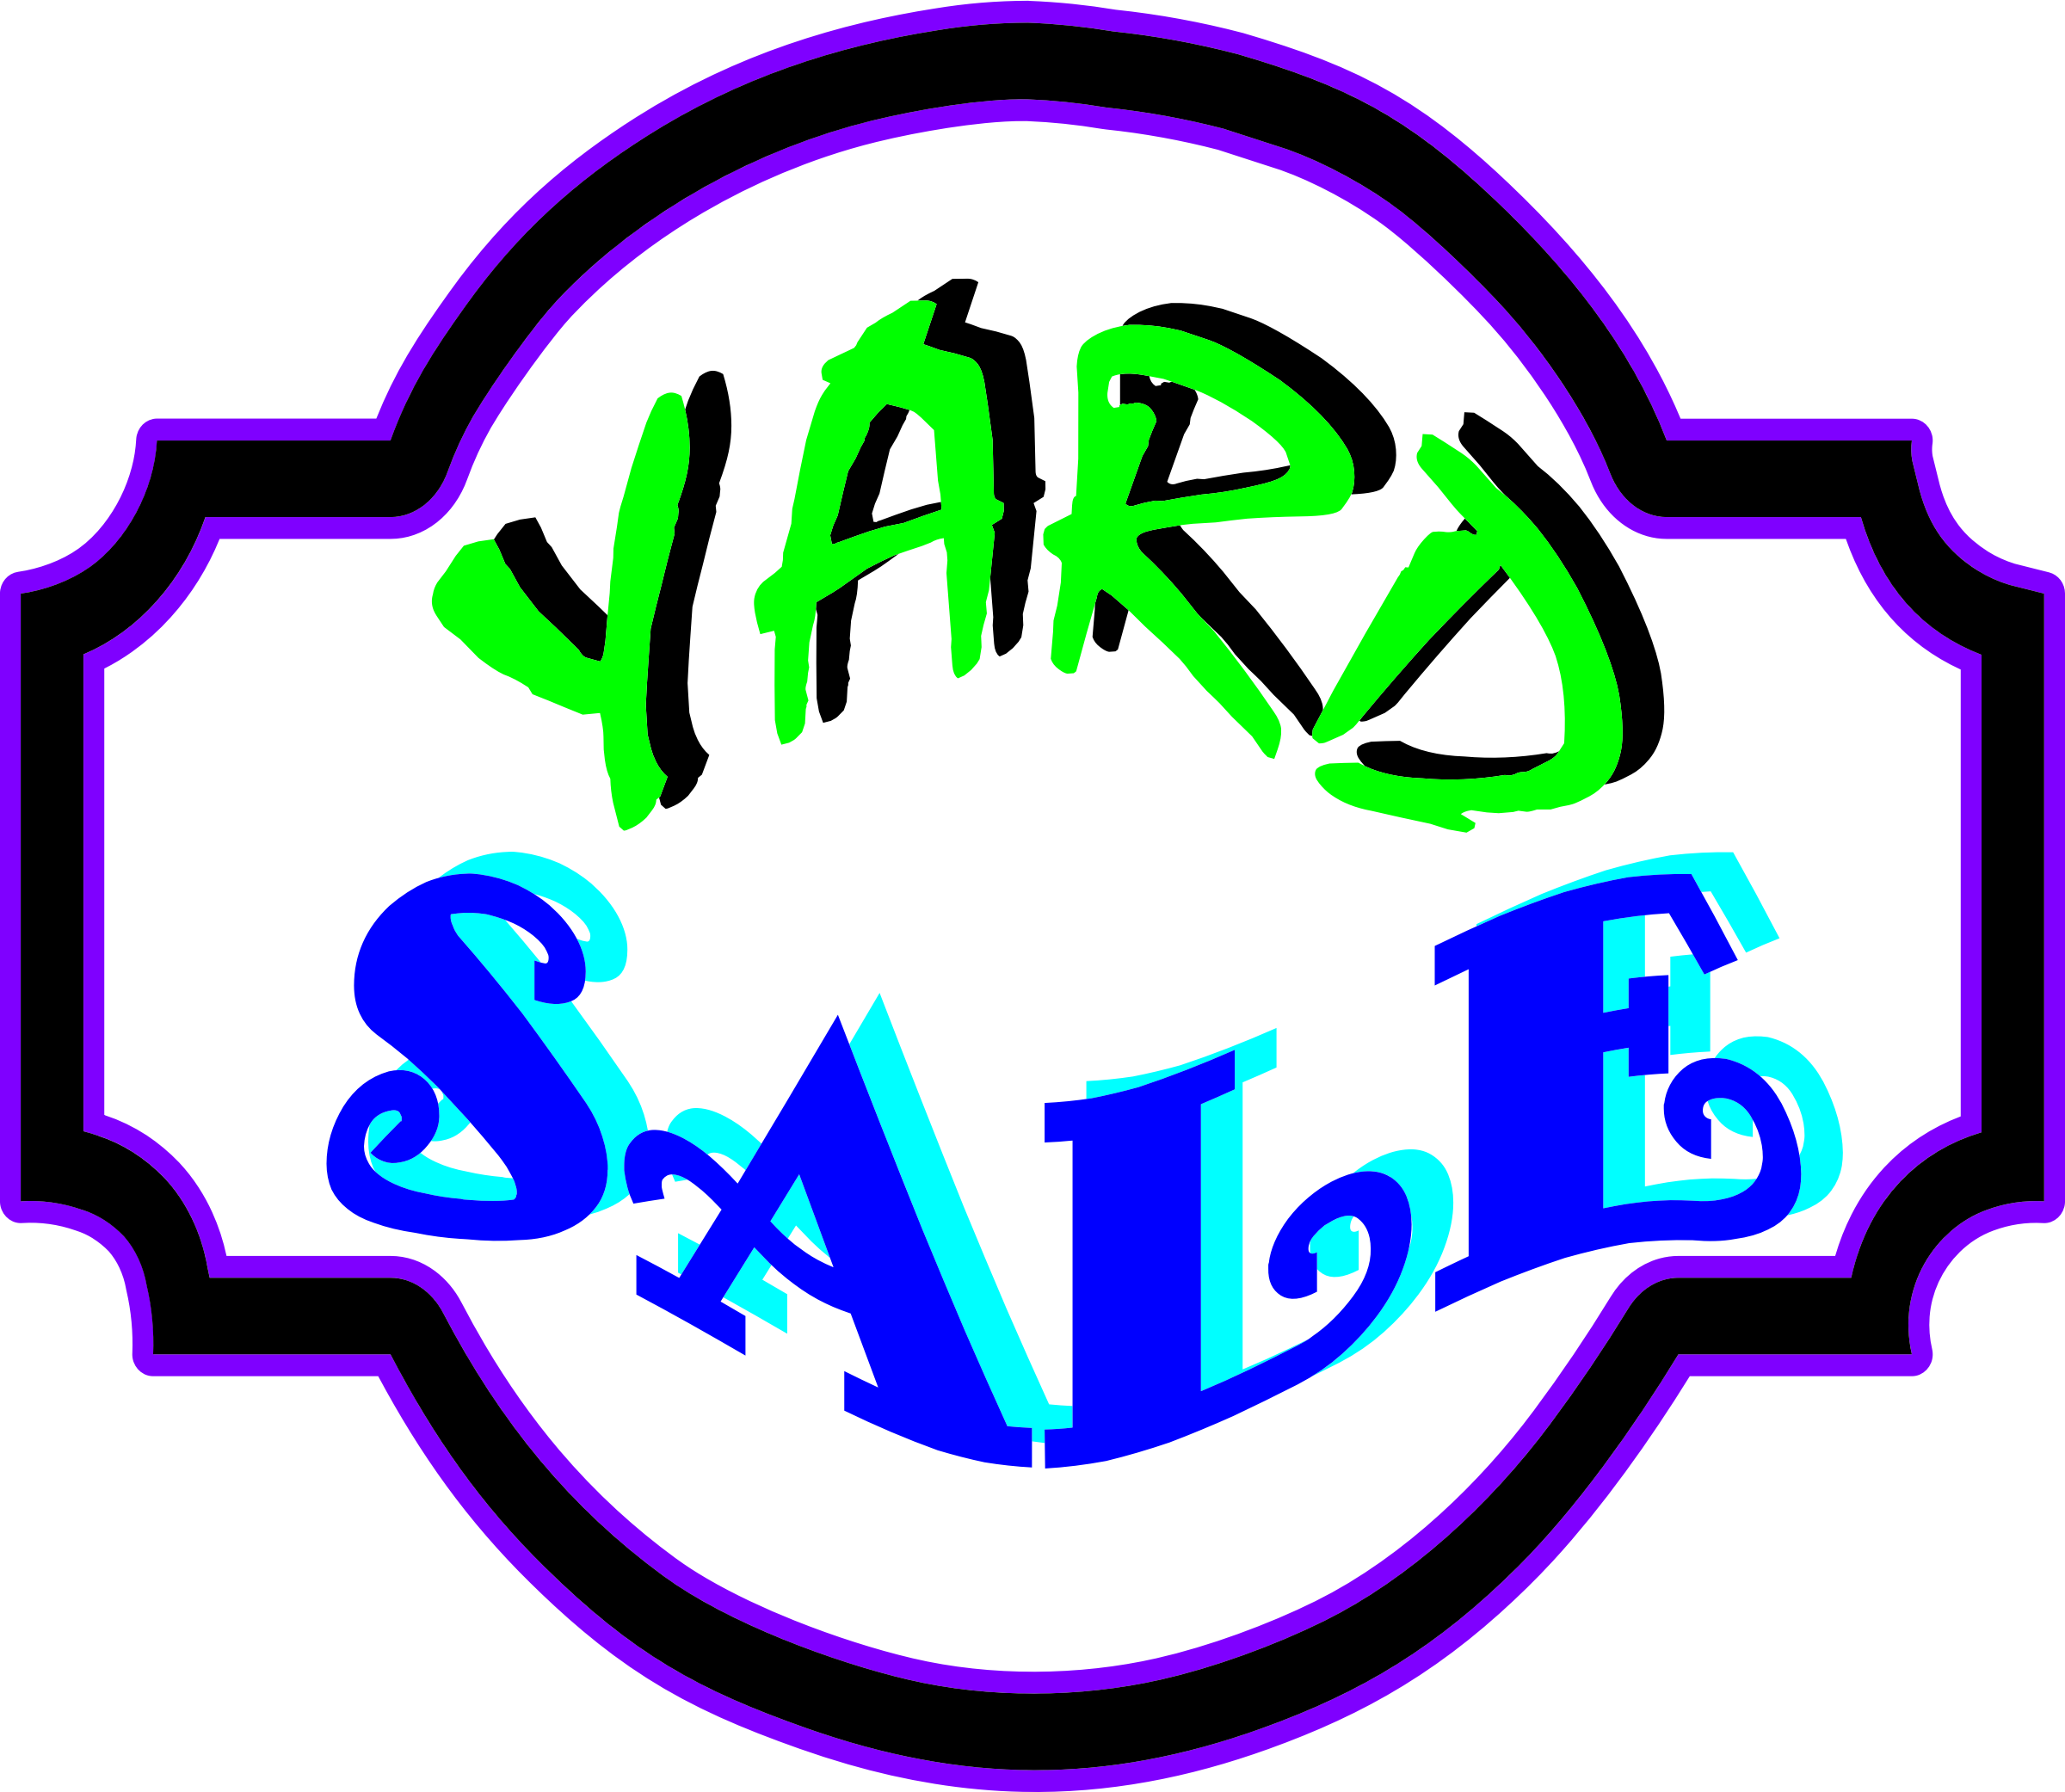 Free yard sale clipart graphics picture freeuse Rummage Sale Graphics   Free download best Rummage Sale Graphics on ... picture freeuse